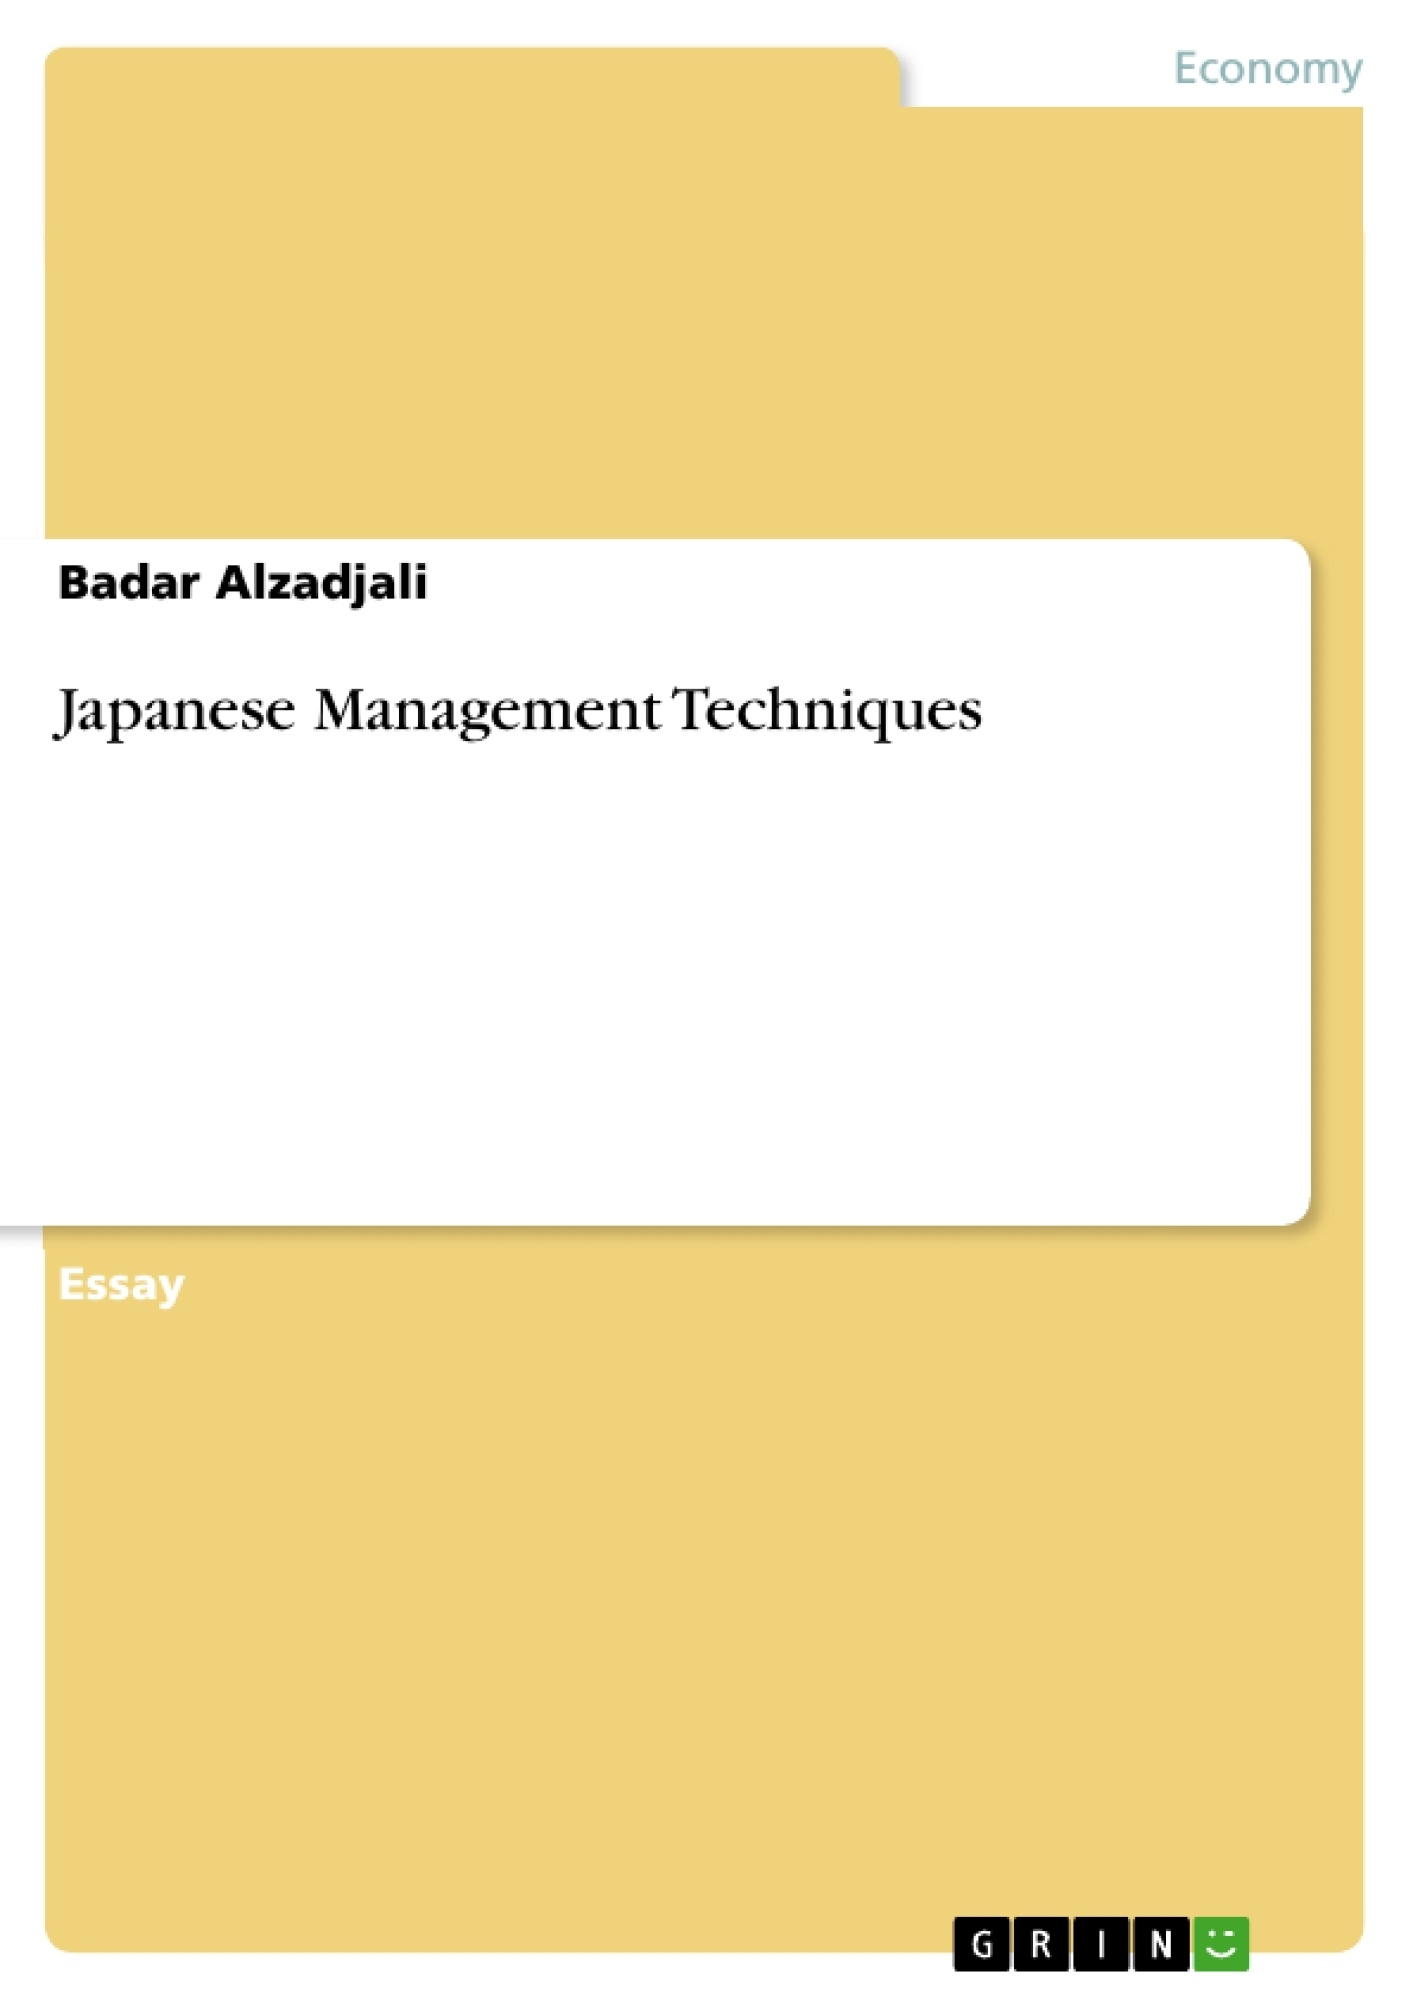 japanese management techniques  publish your masters thesis  upload your own papers earn money and win an iphone x